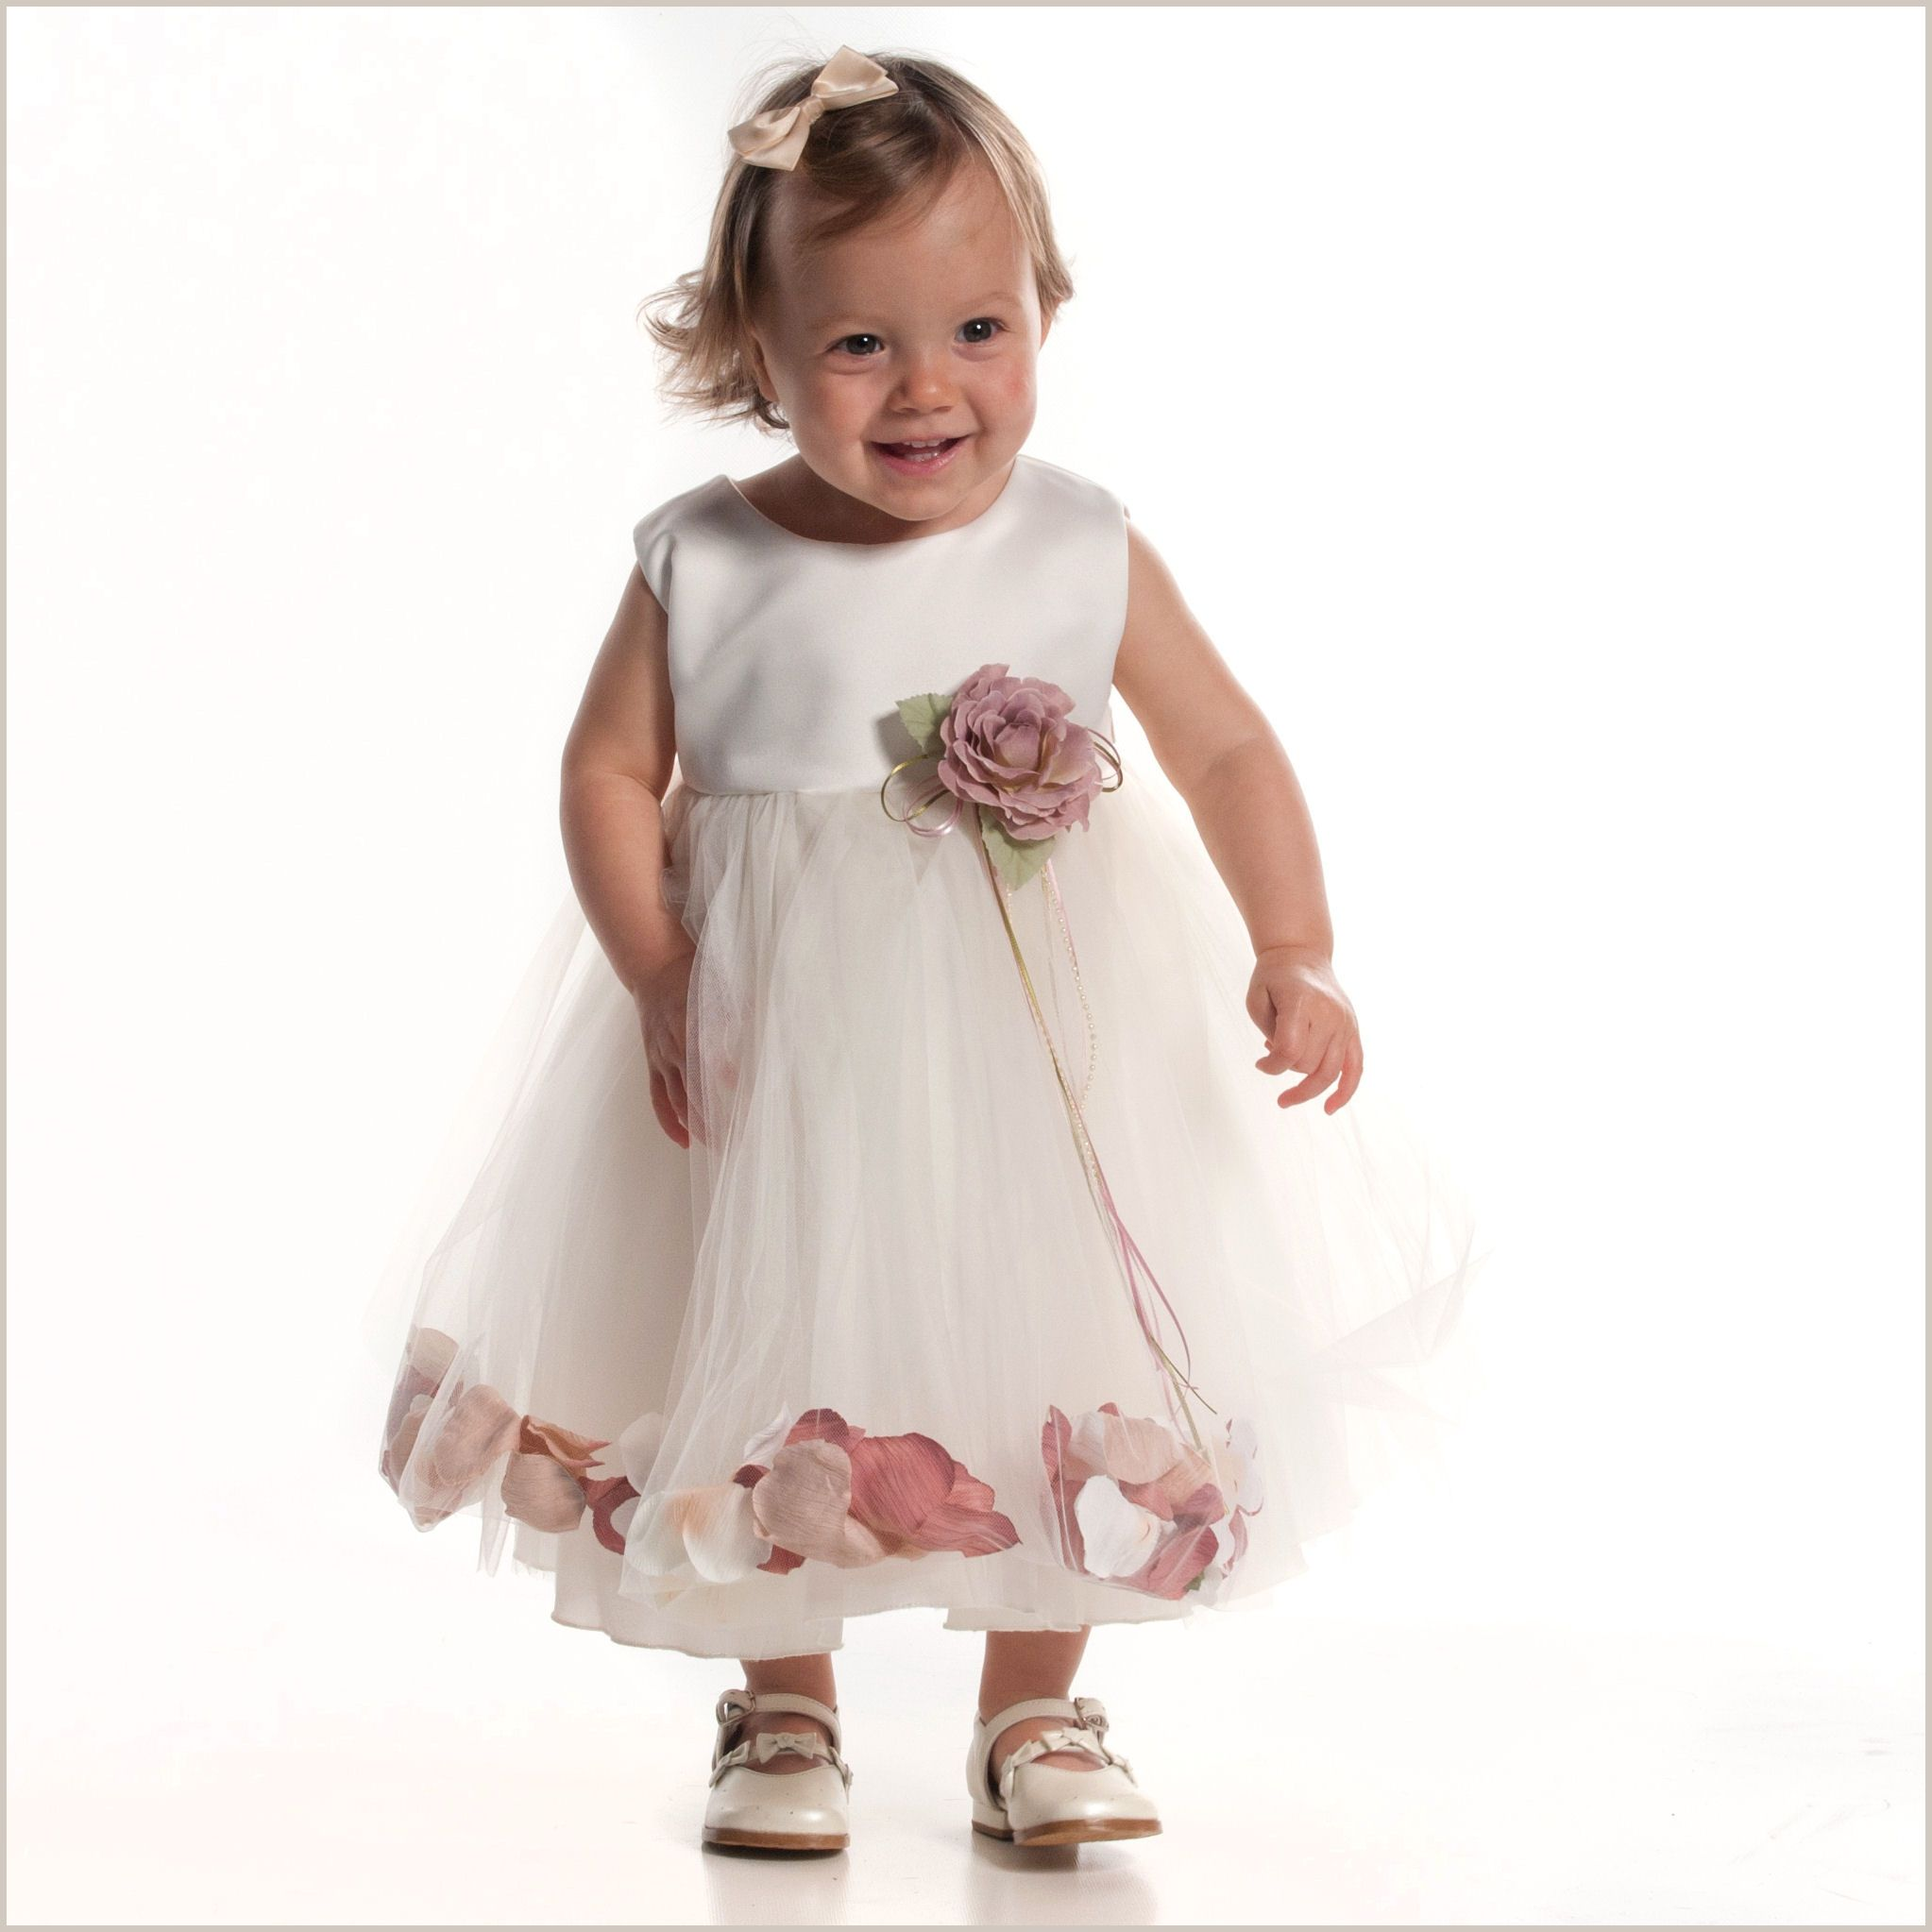 Petal dress in ivory and dusky pink flower girl pinterest petal dress in ivory and dusky pink baby flower girl mightylinksfo